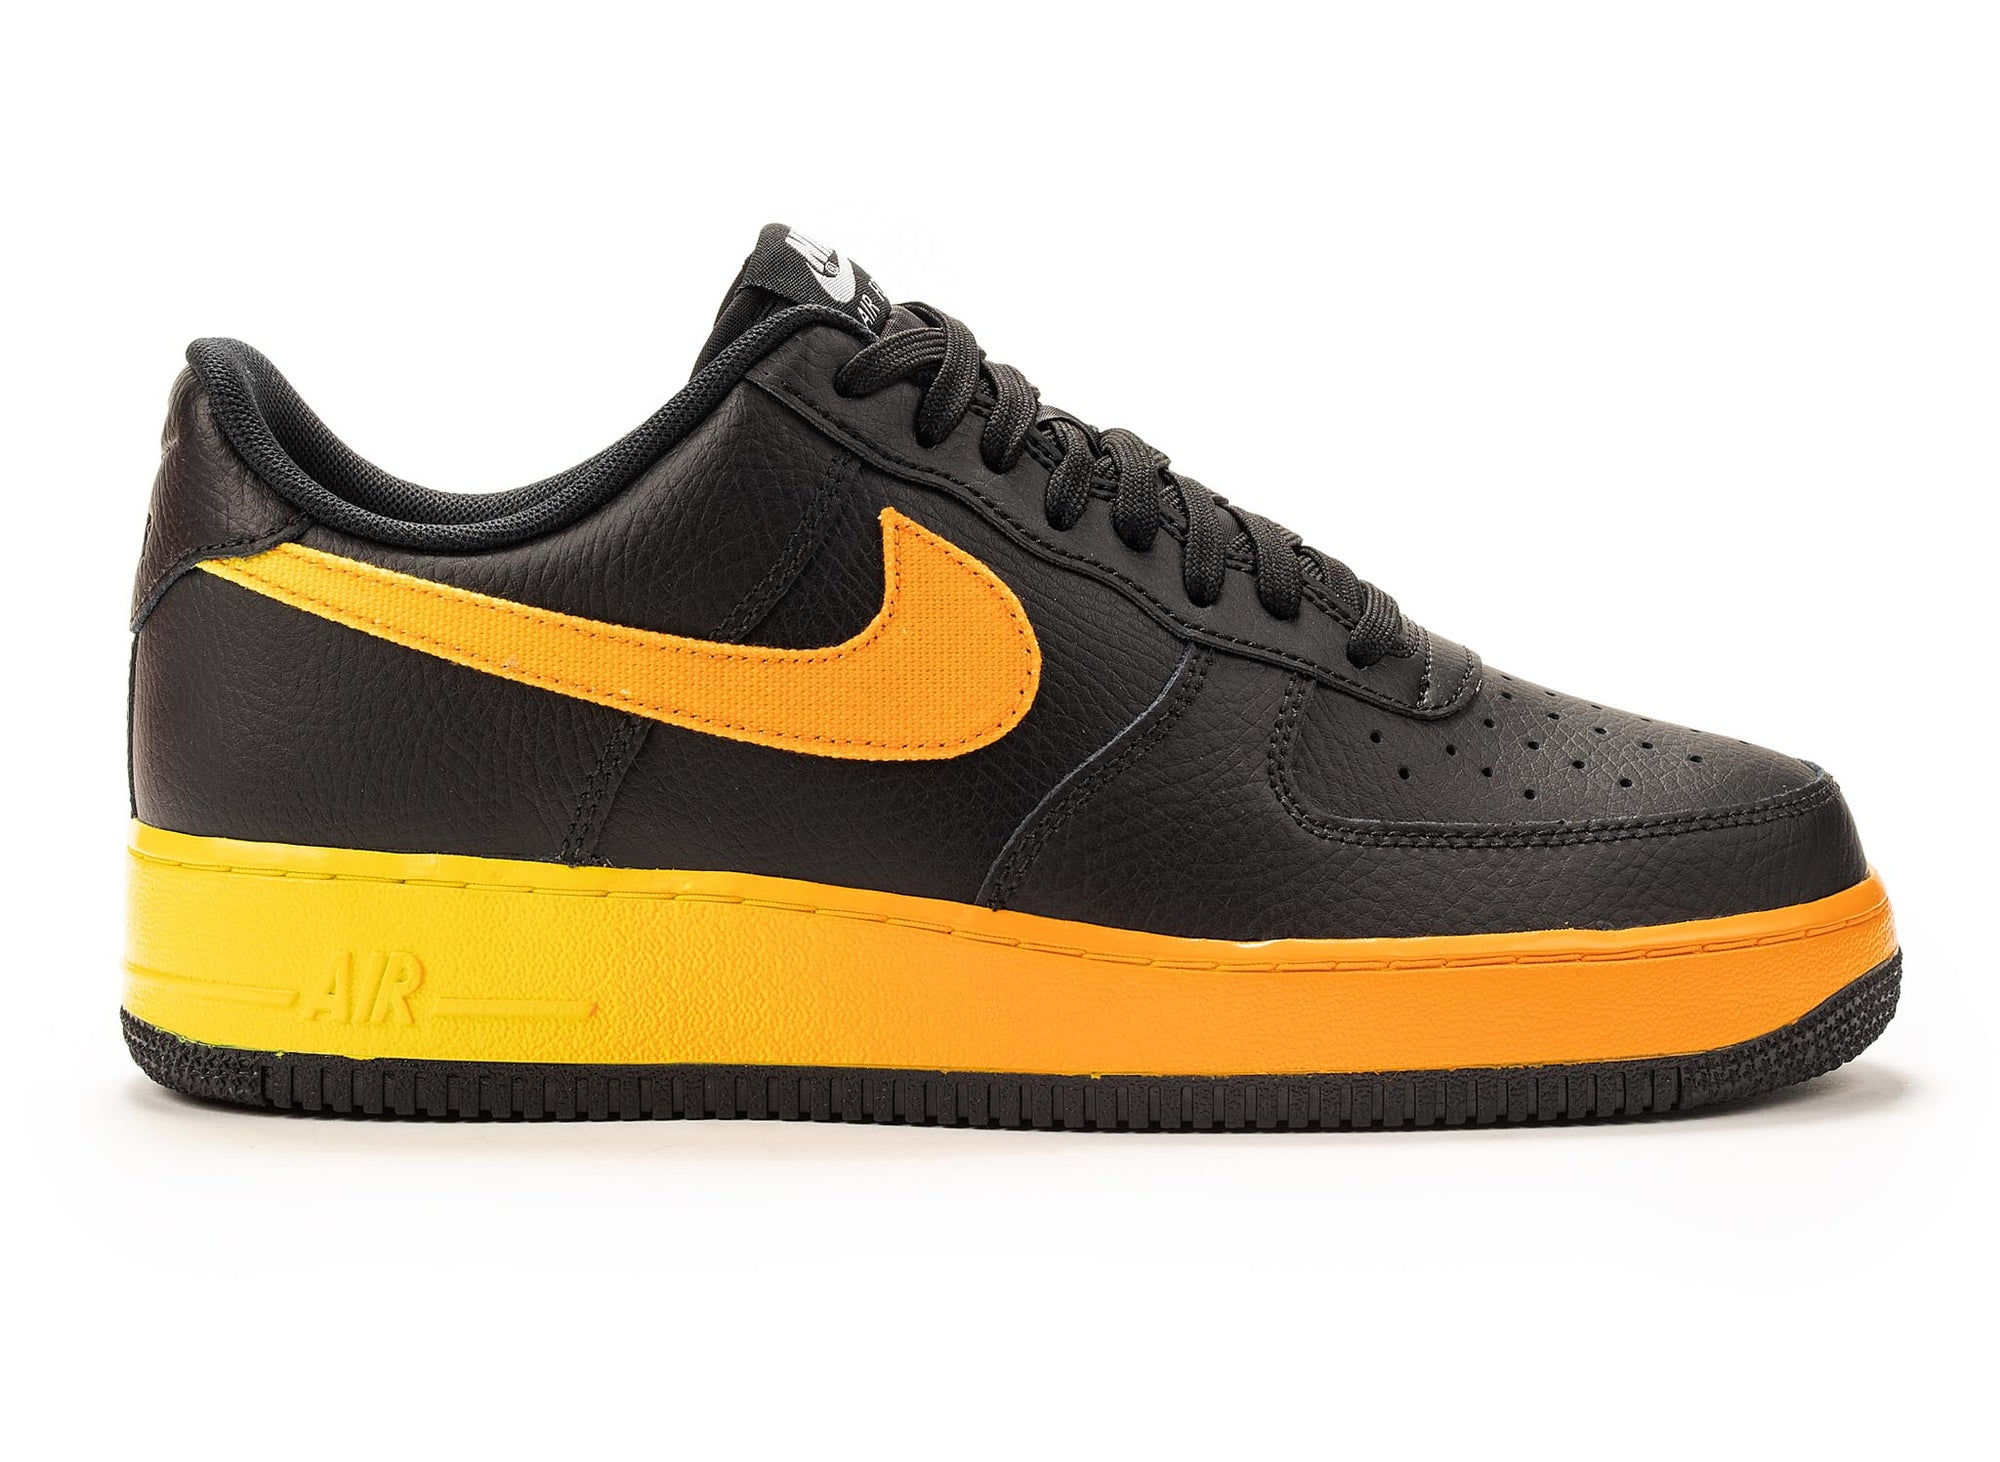 Nike Air Force 1 07 LV8 'Opti Yellow'